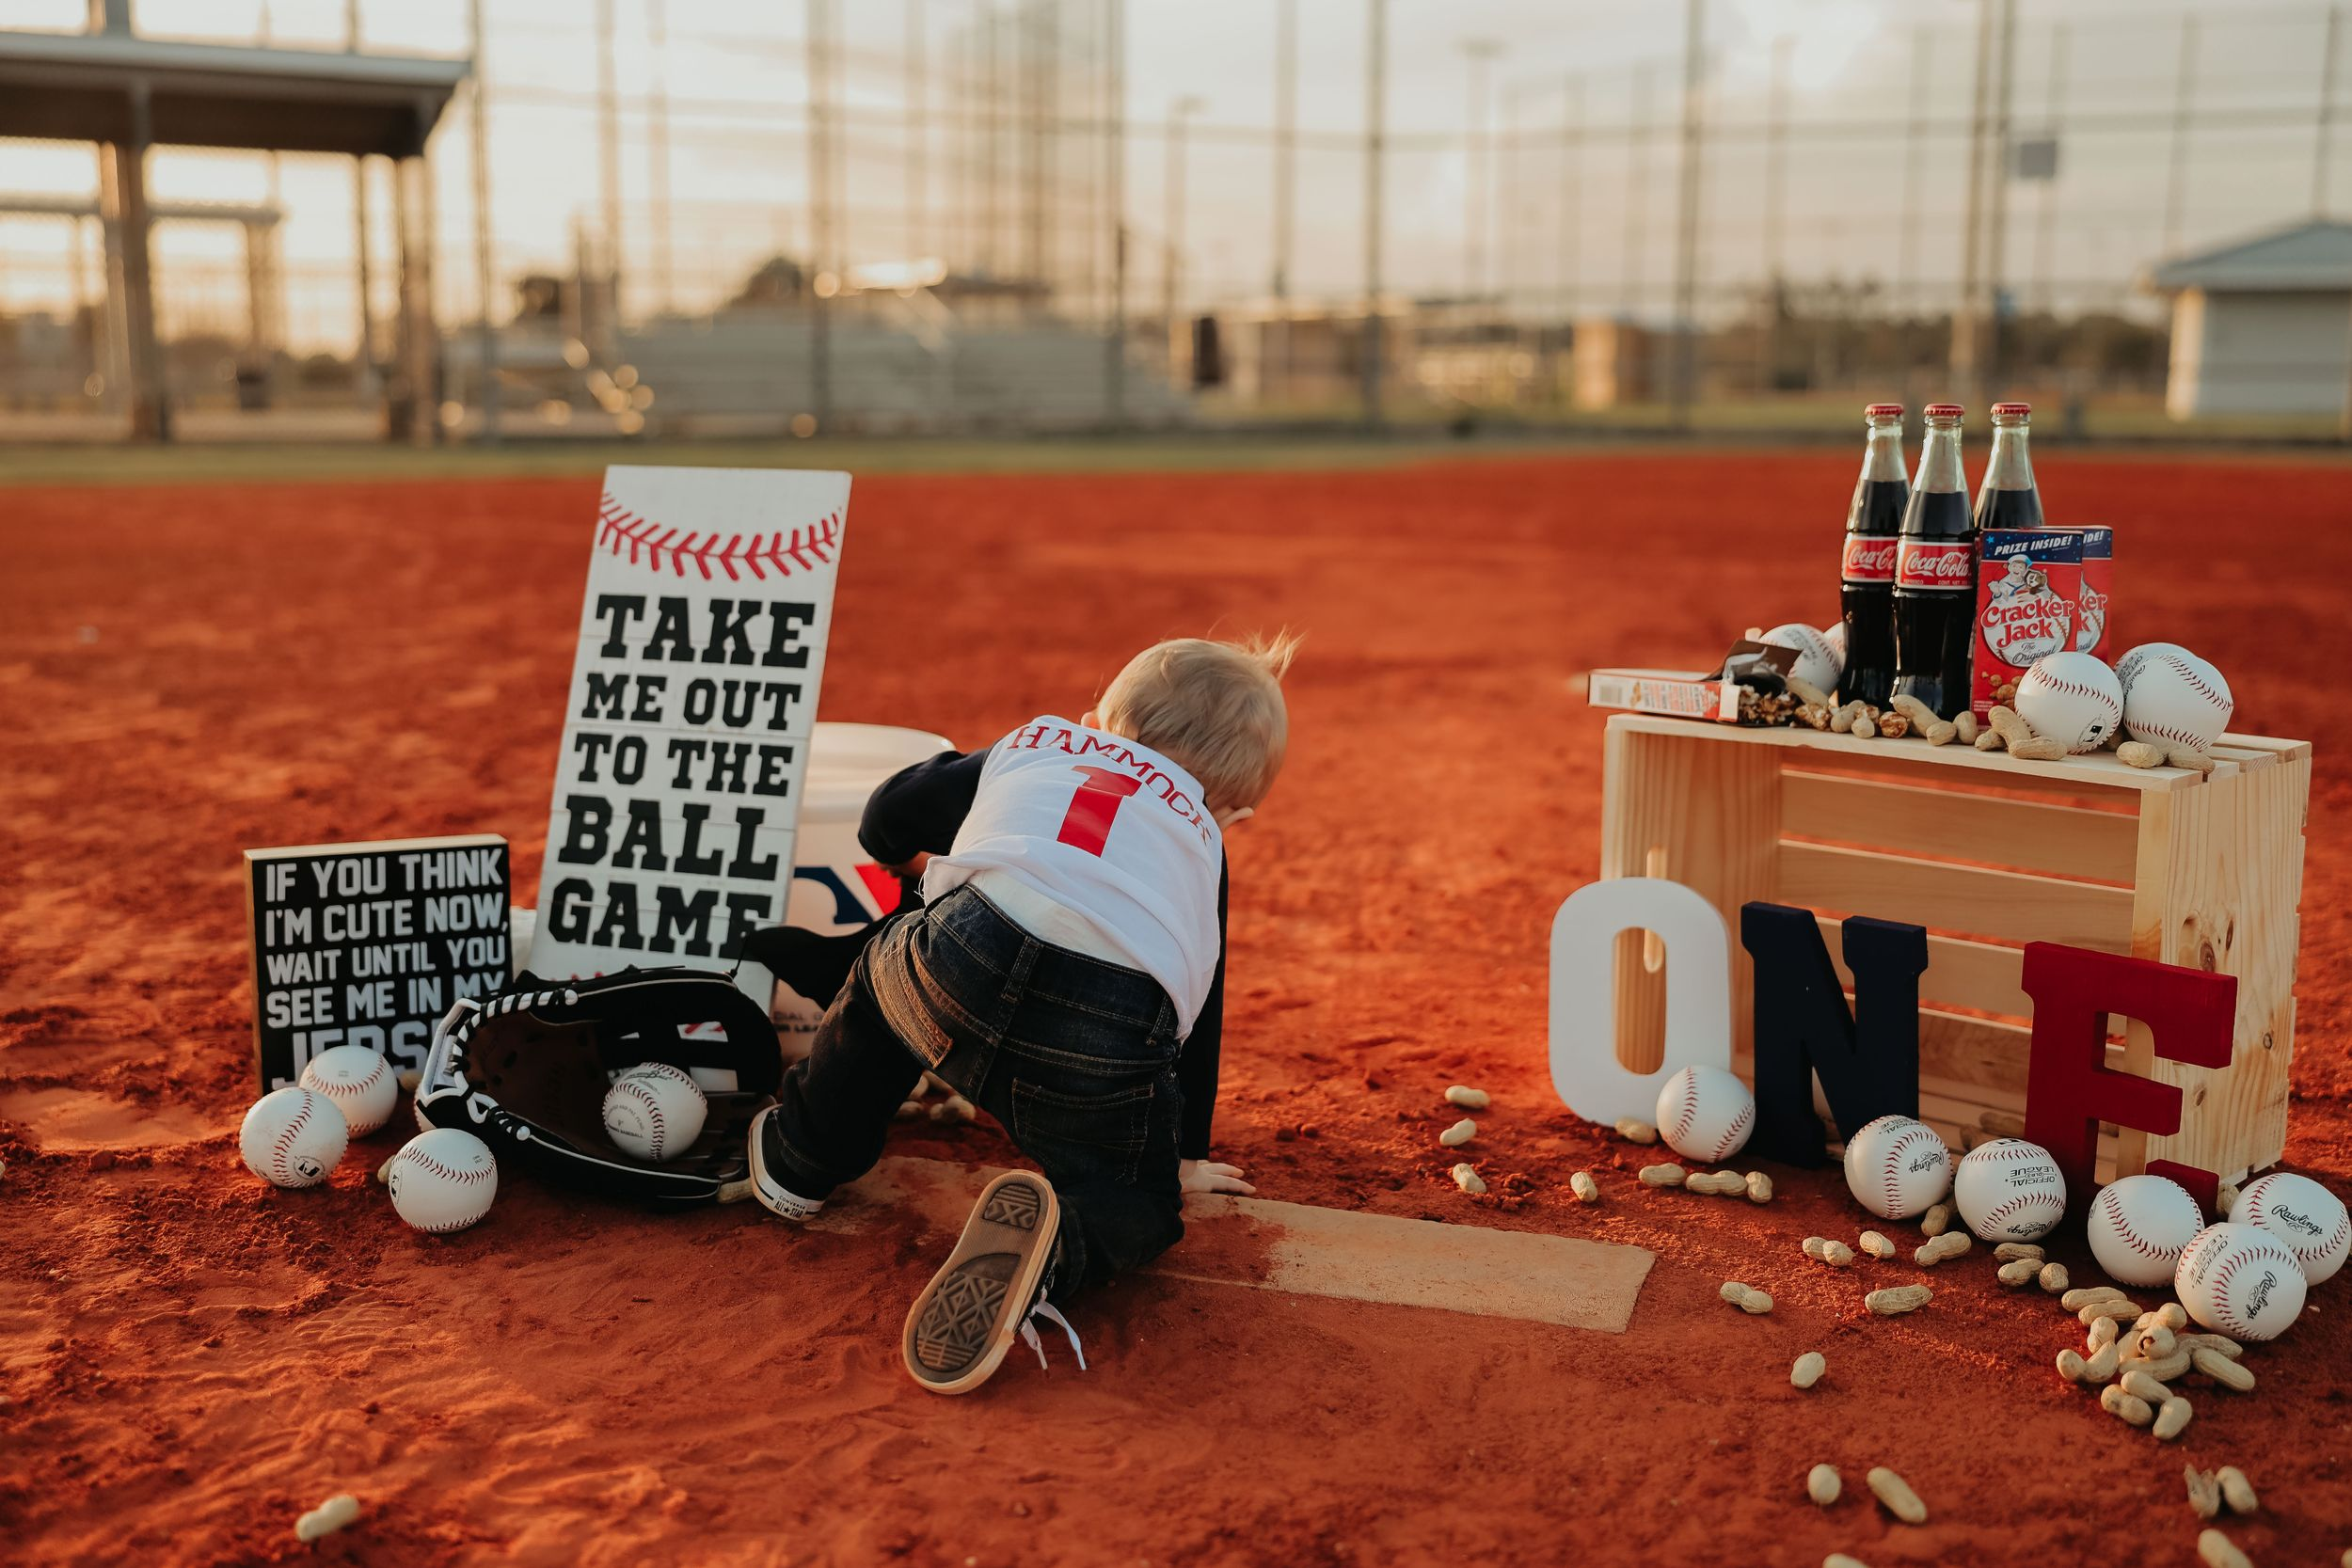 BASEBALL-THEME-CAKE-SMASH-SOUTH-FLORIDA-WEDDING-PORTRAIT-PHOTOGRAPHY-SCRIBBLED-MOMENTS-PHOTOGRAPHY